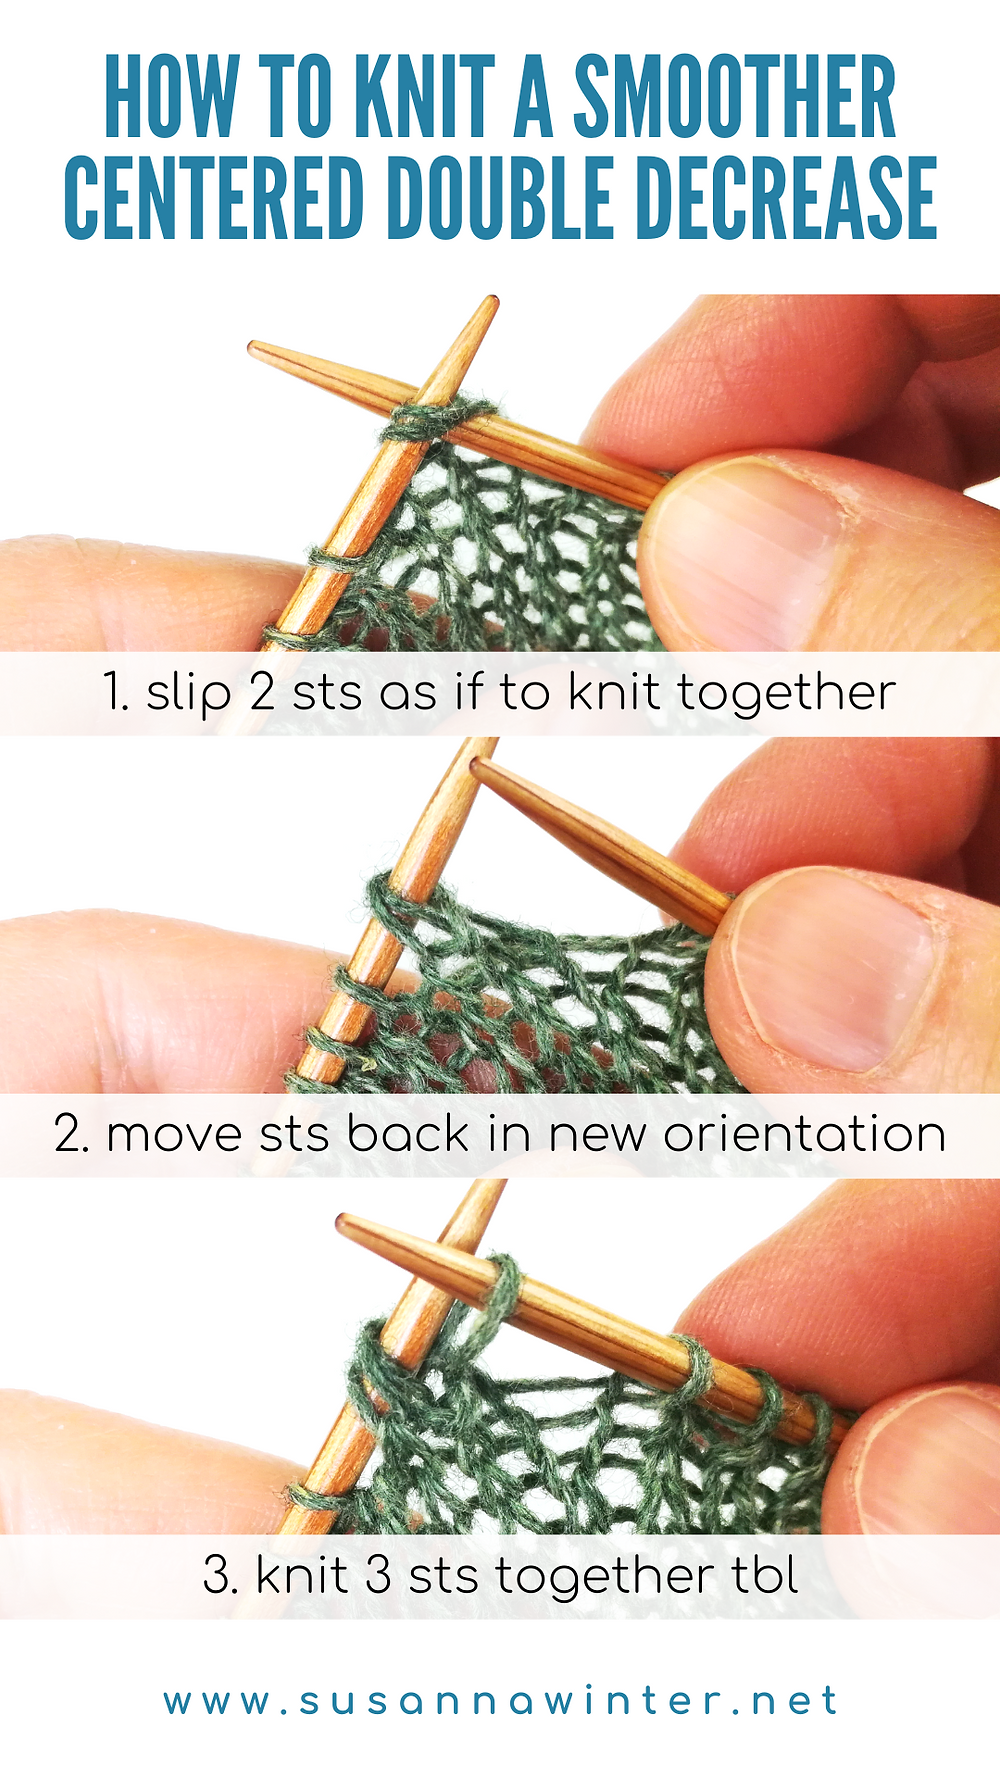 A three-step photo tutorial on how to knit a smoother centered double decrease